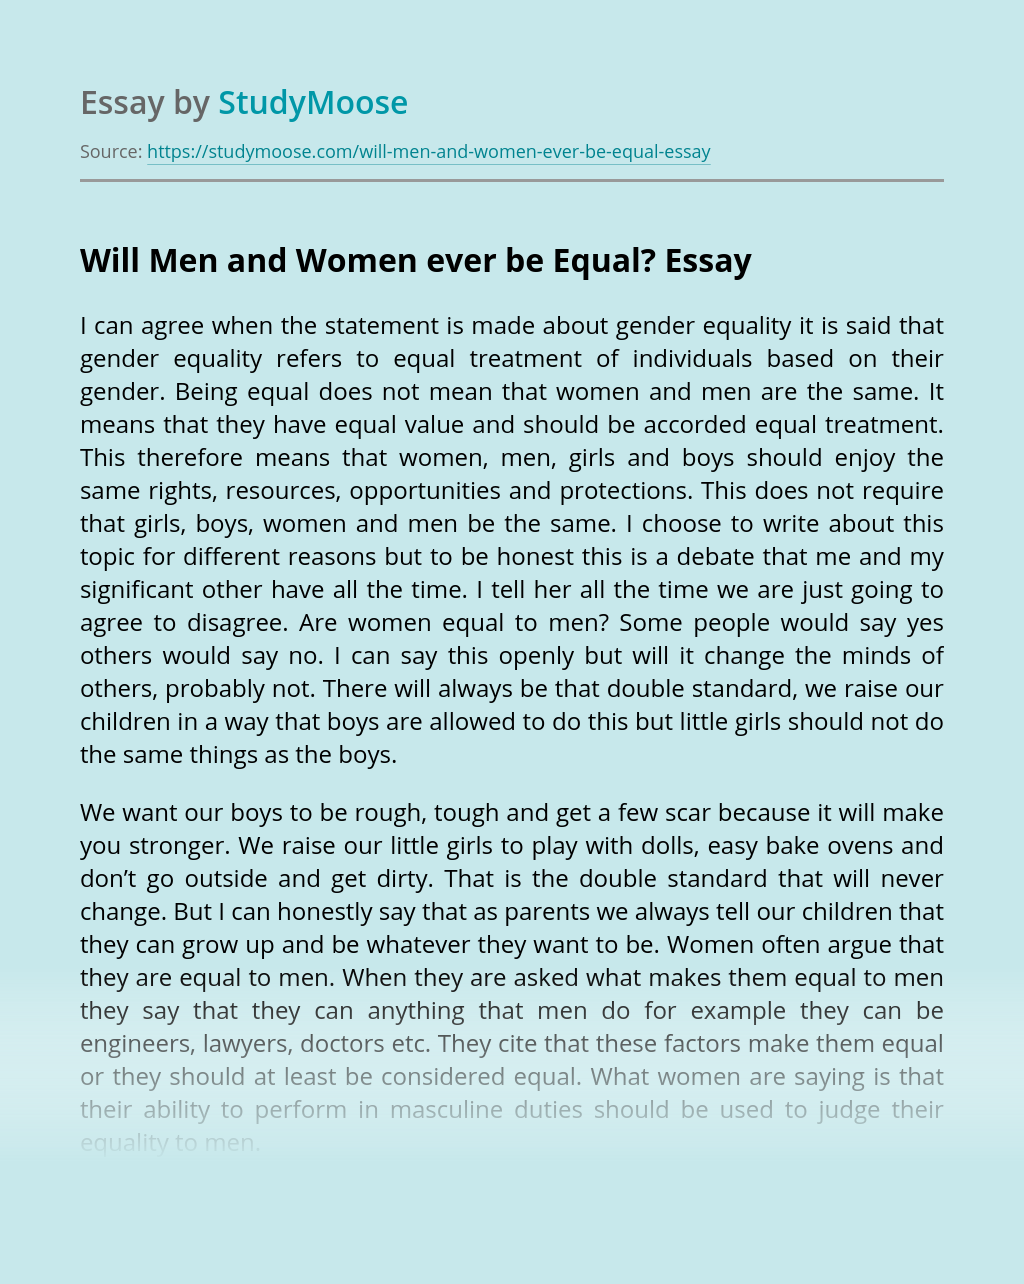 Will Men and Women ever be Equal?